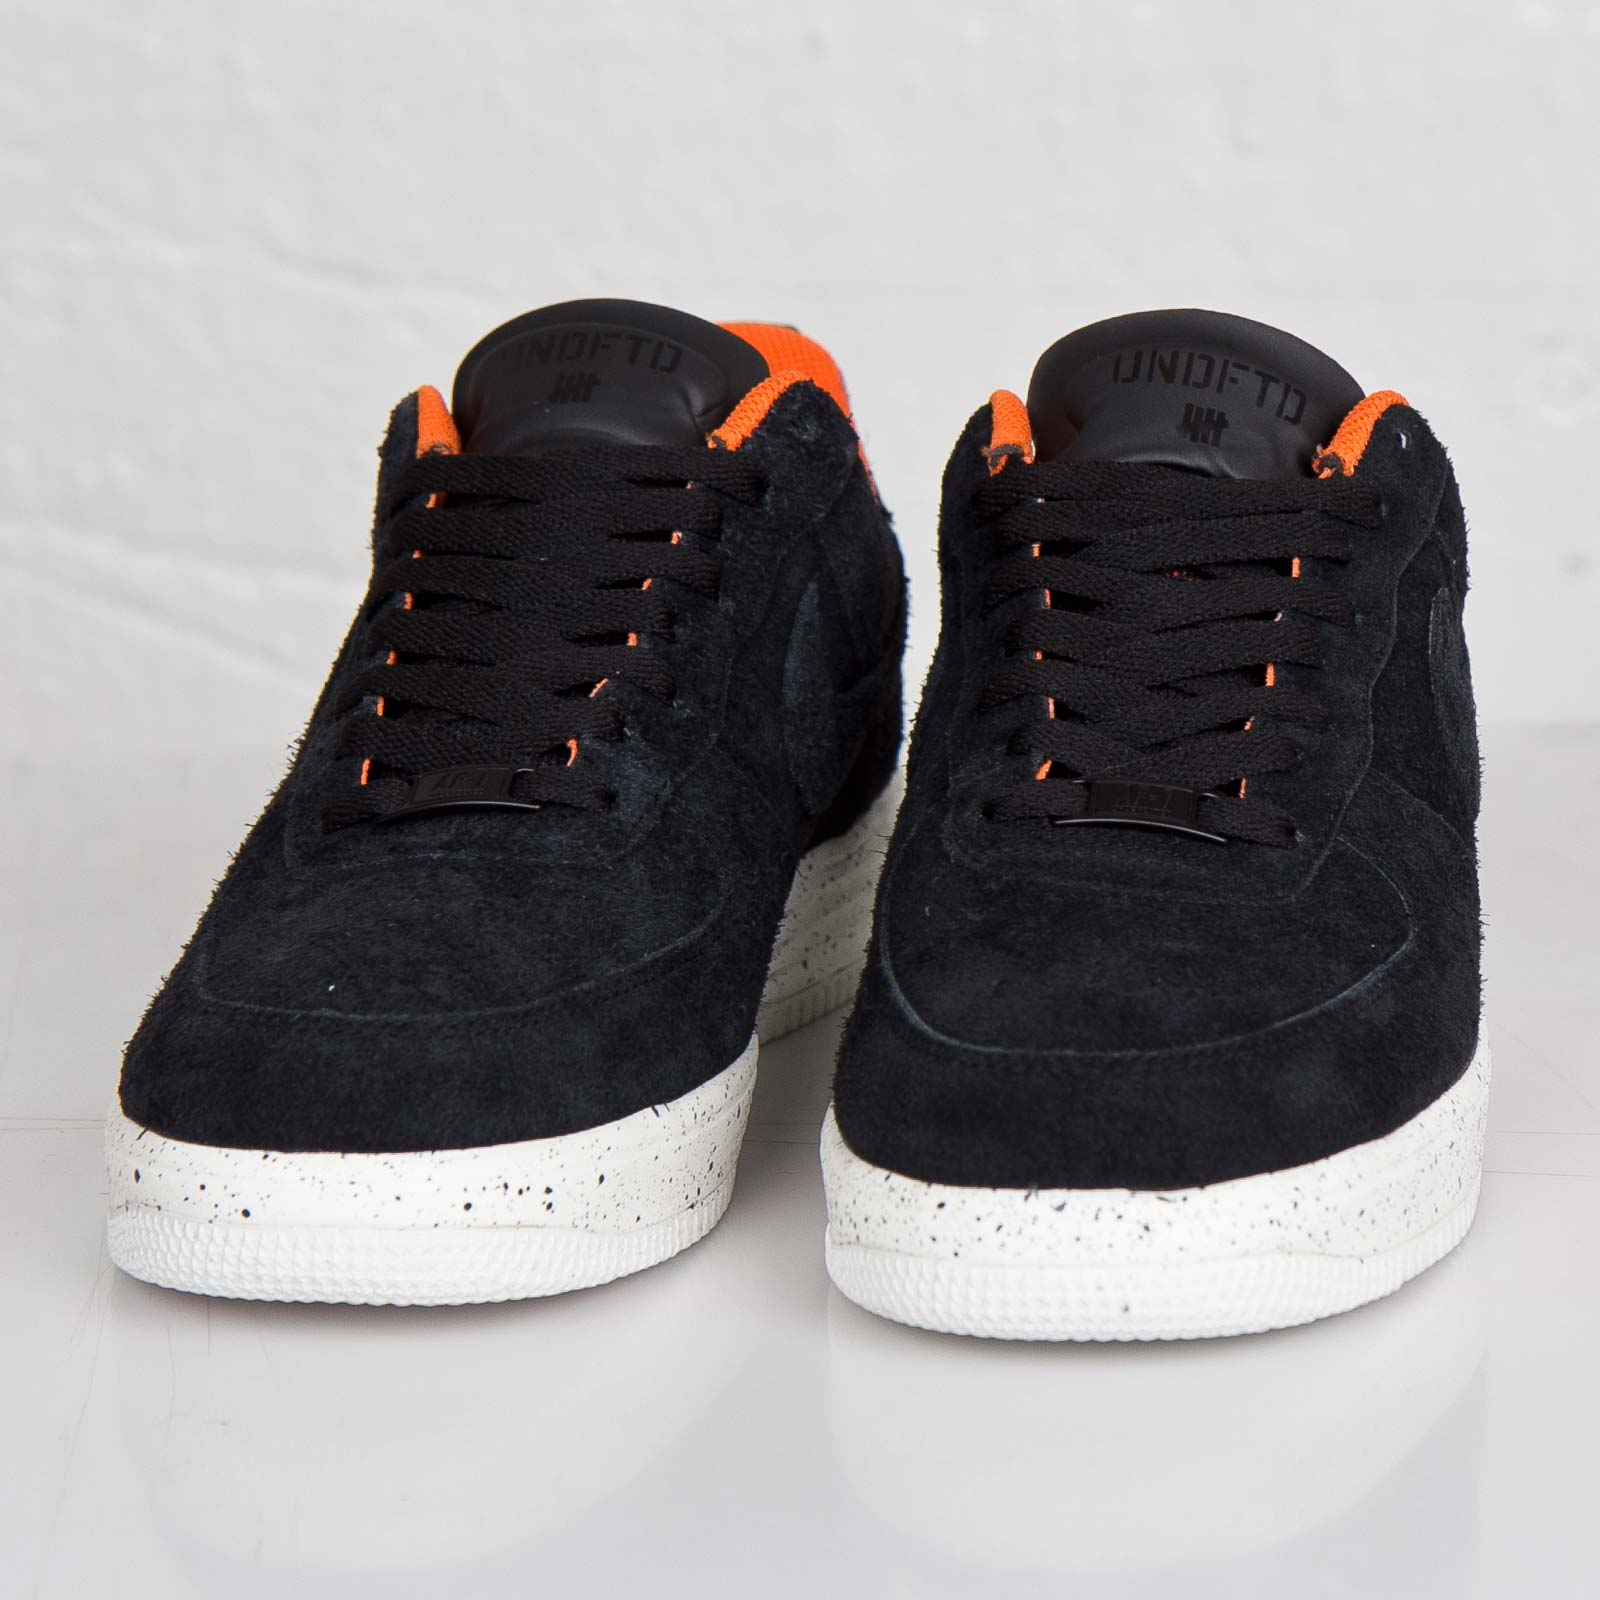 c888f5750260 netherlands nike air force 1 undefeated undftd 5cd86 d0c0e